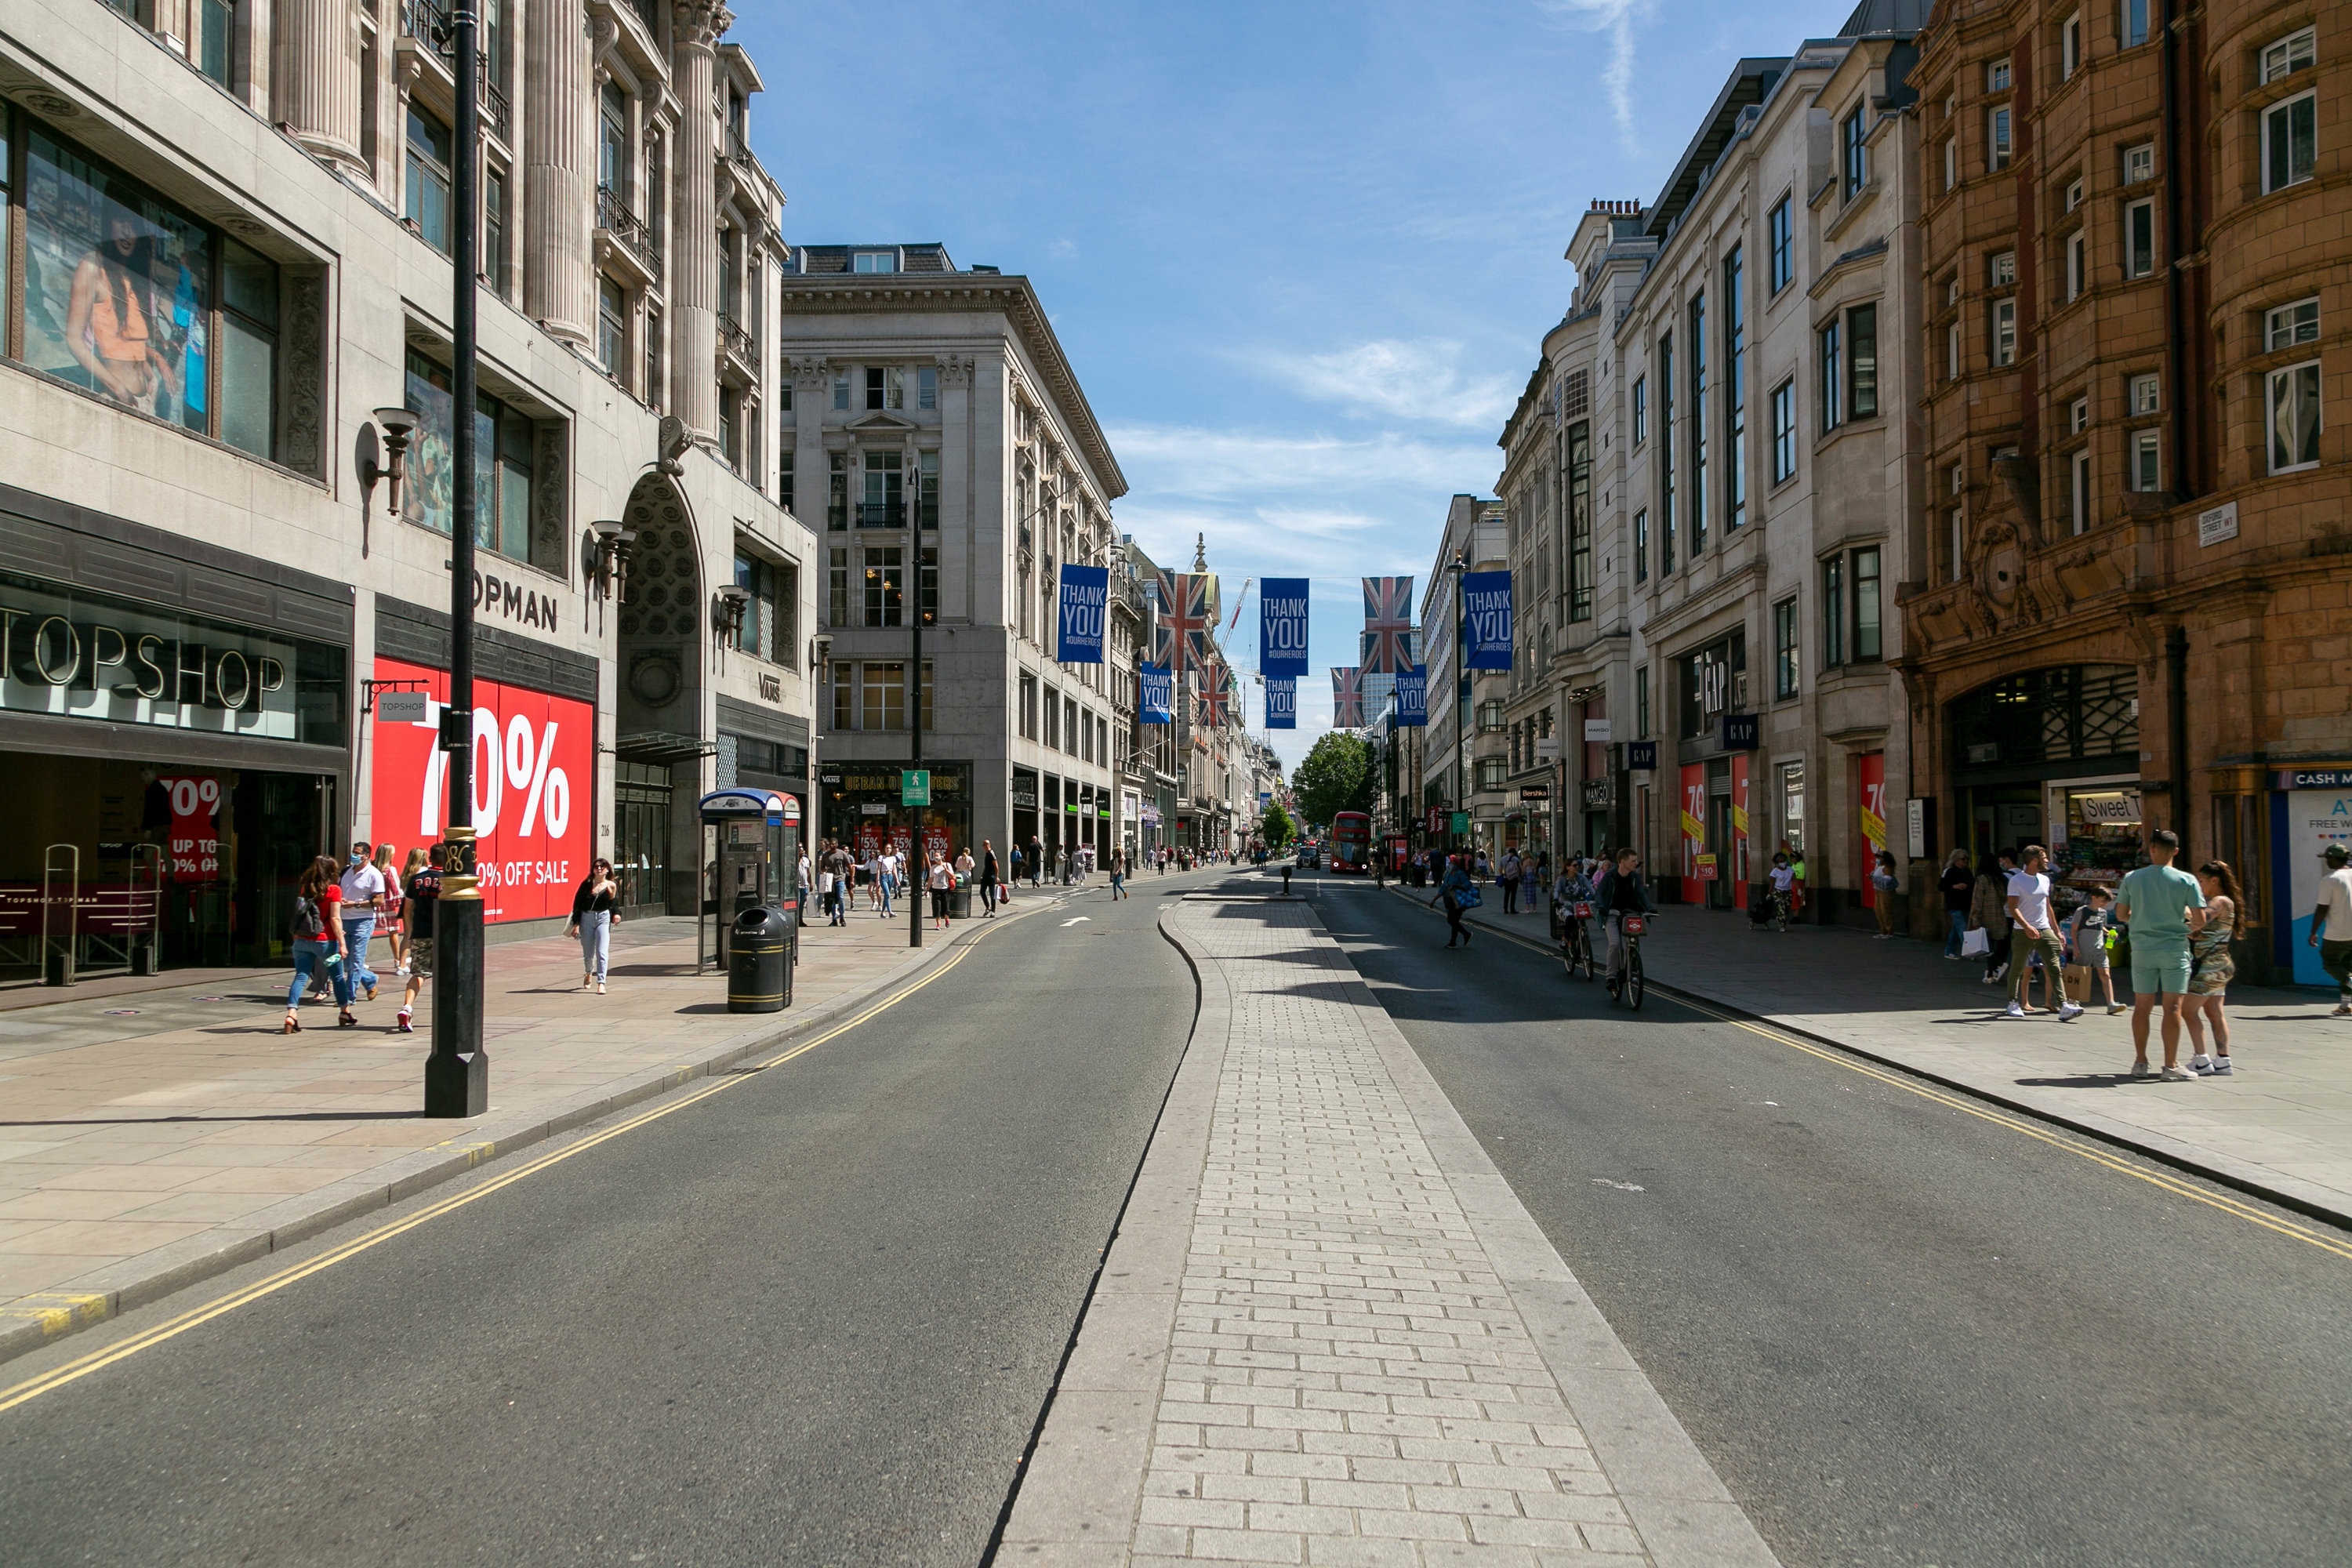 Retailers are urging shoppers to return to famous shopping areas